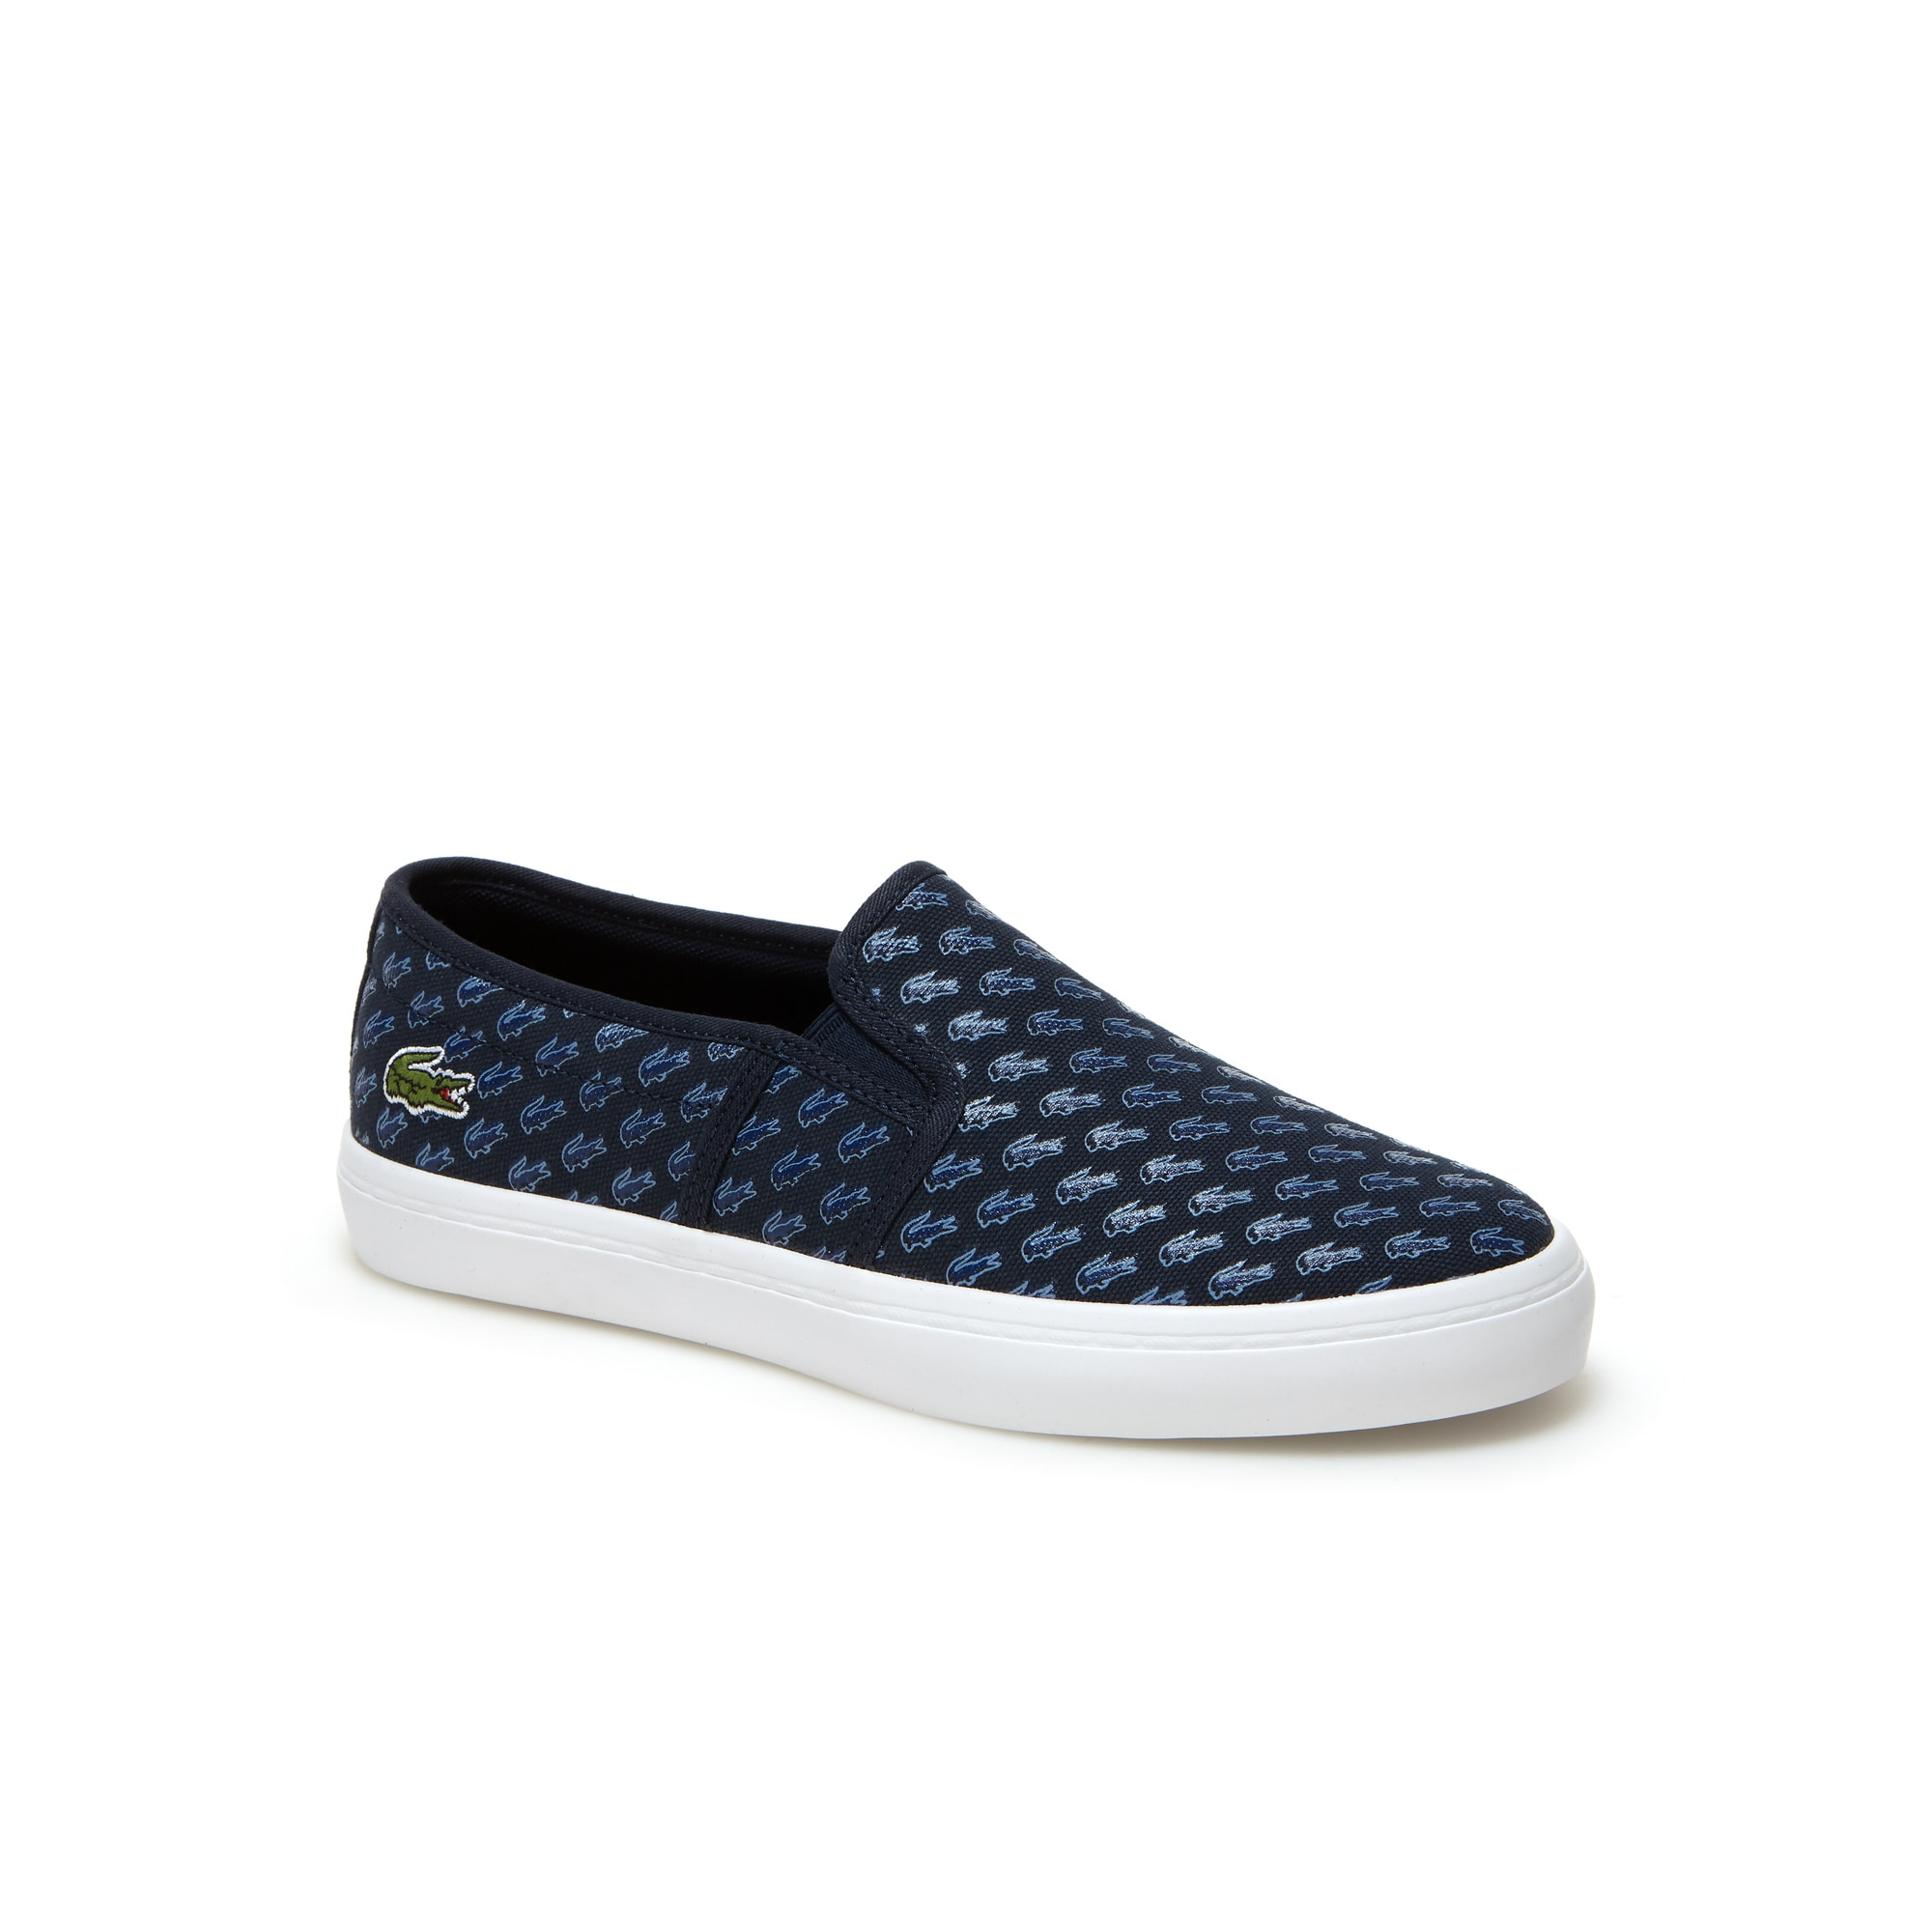 Women's Gazon Canvas Slip-ons